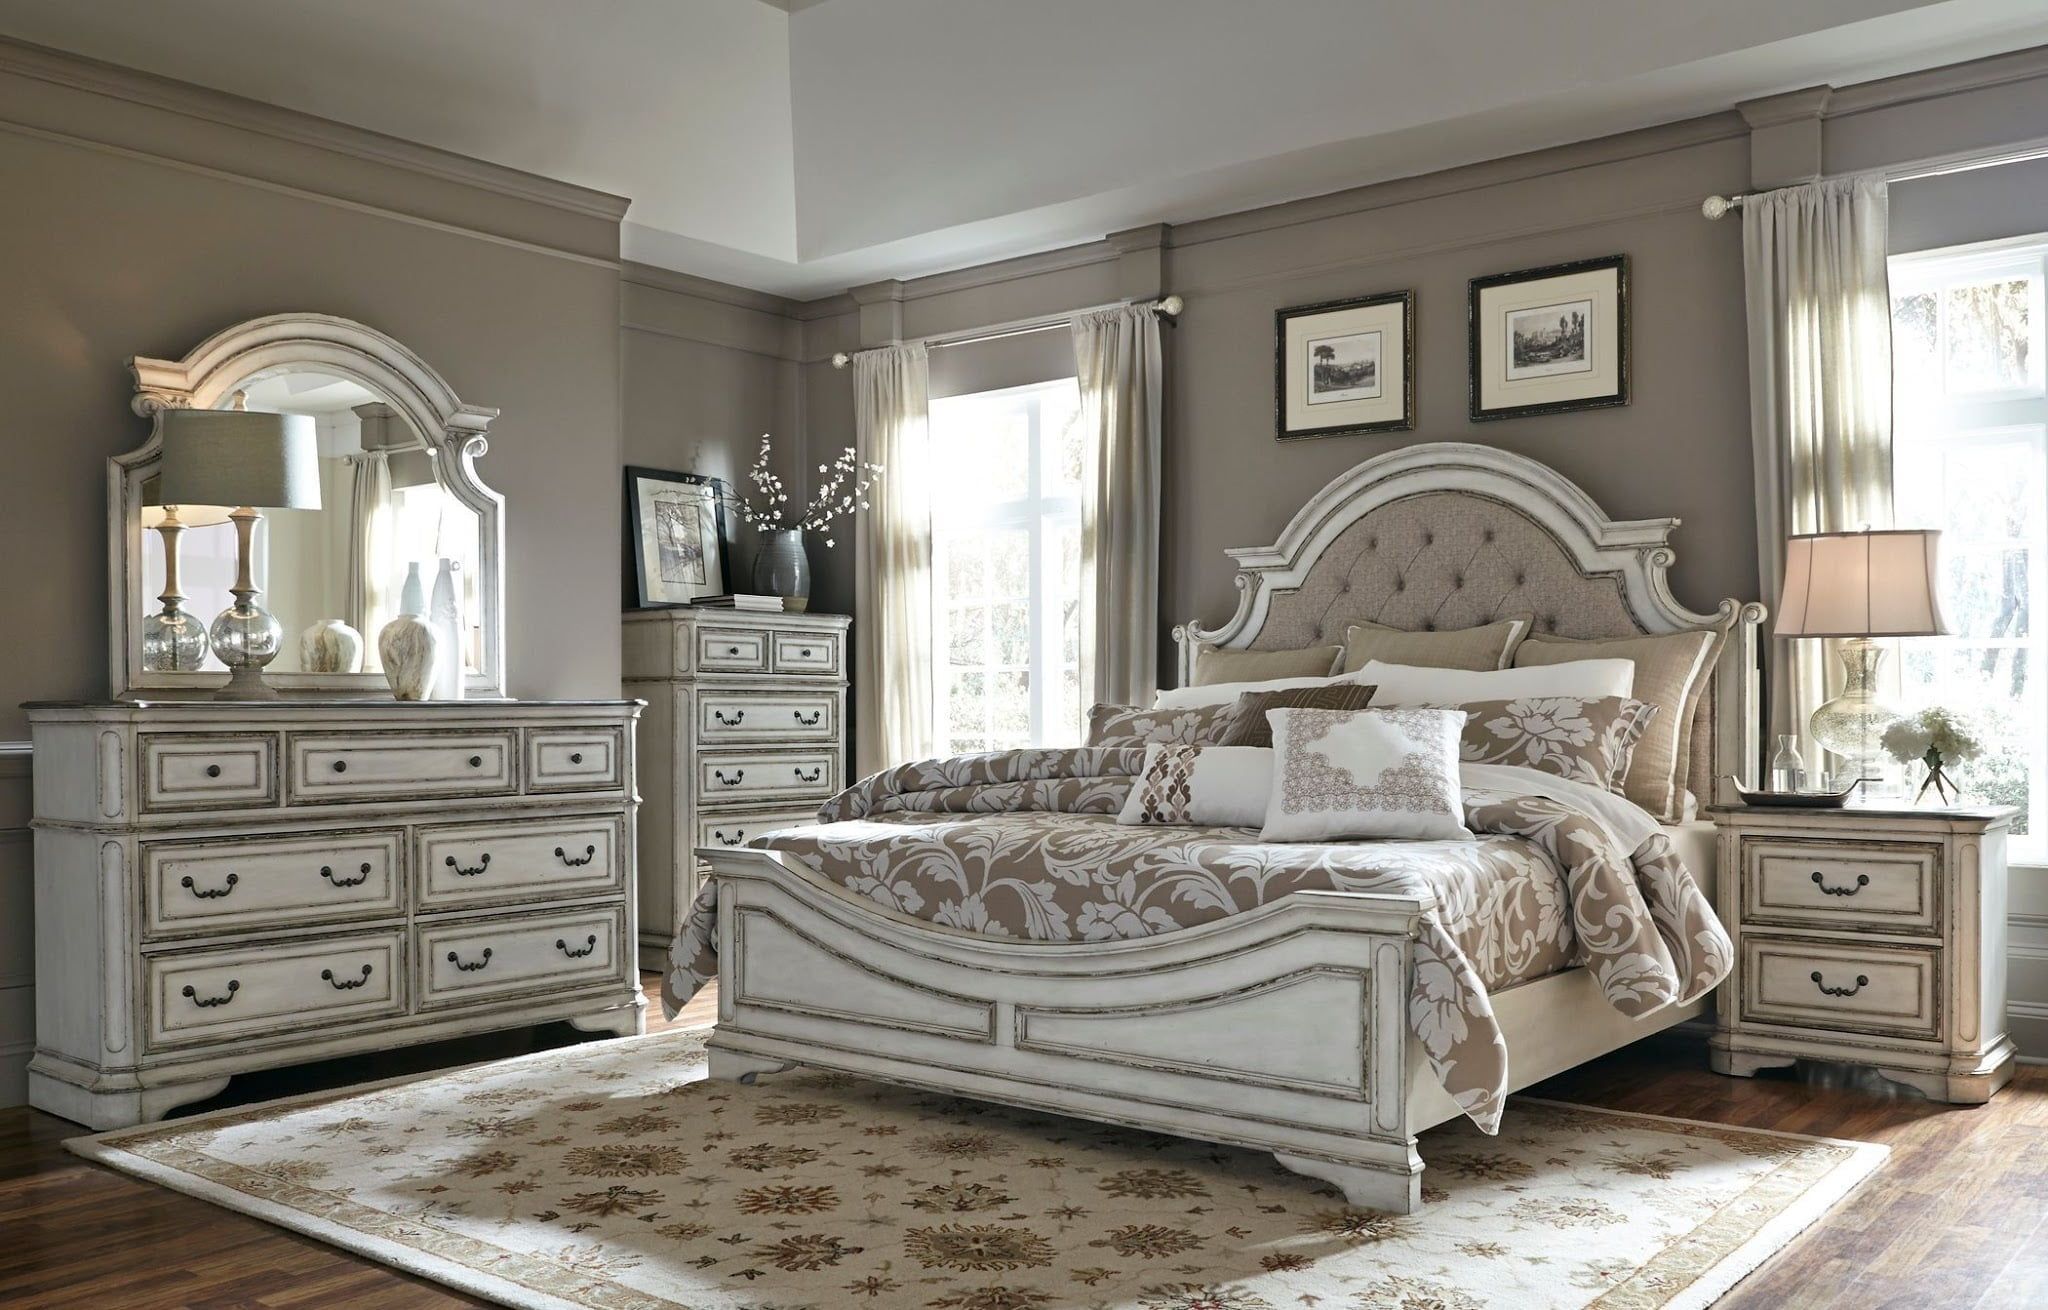 Magnolia Manor Antique White Upholstered Panel Bedroom Set From - Liberty furniture industries bedroom sets